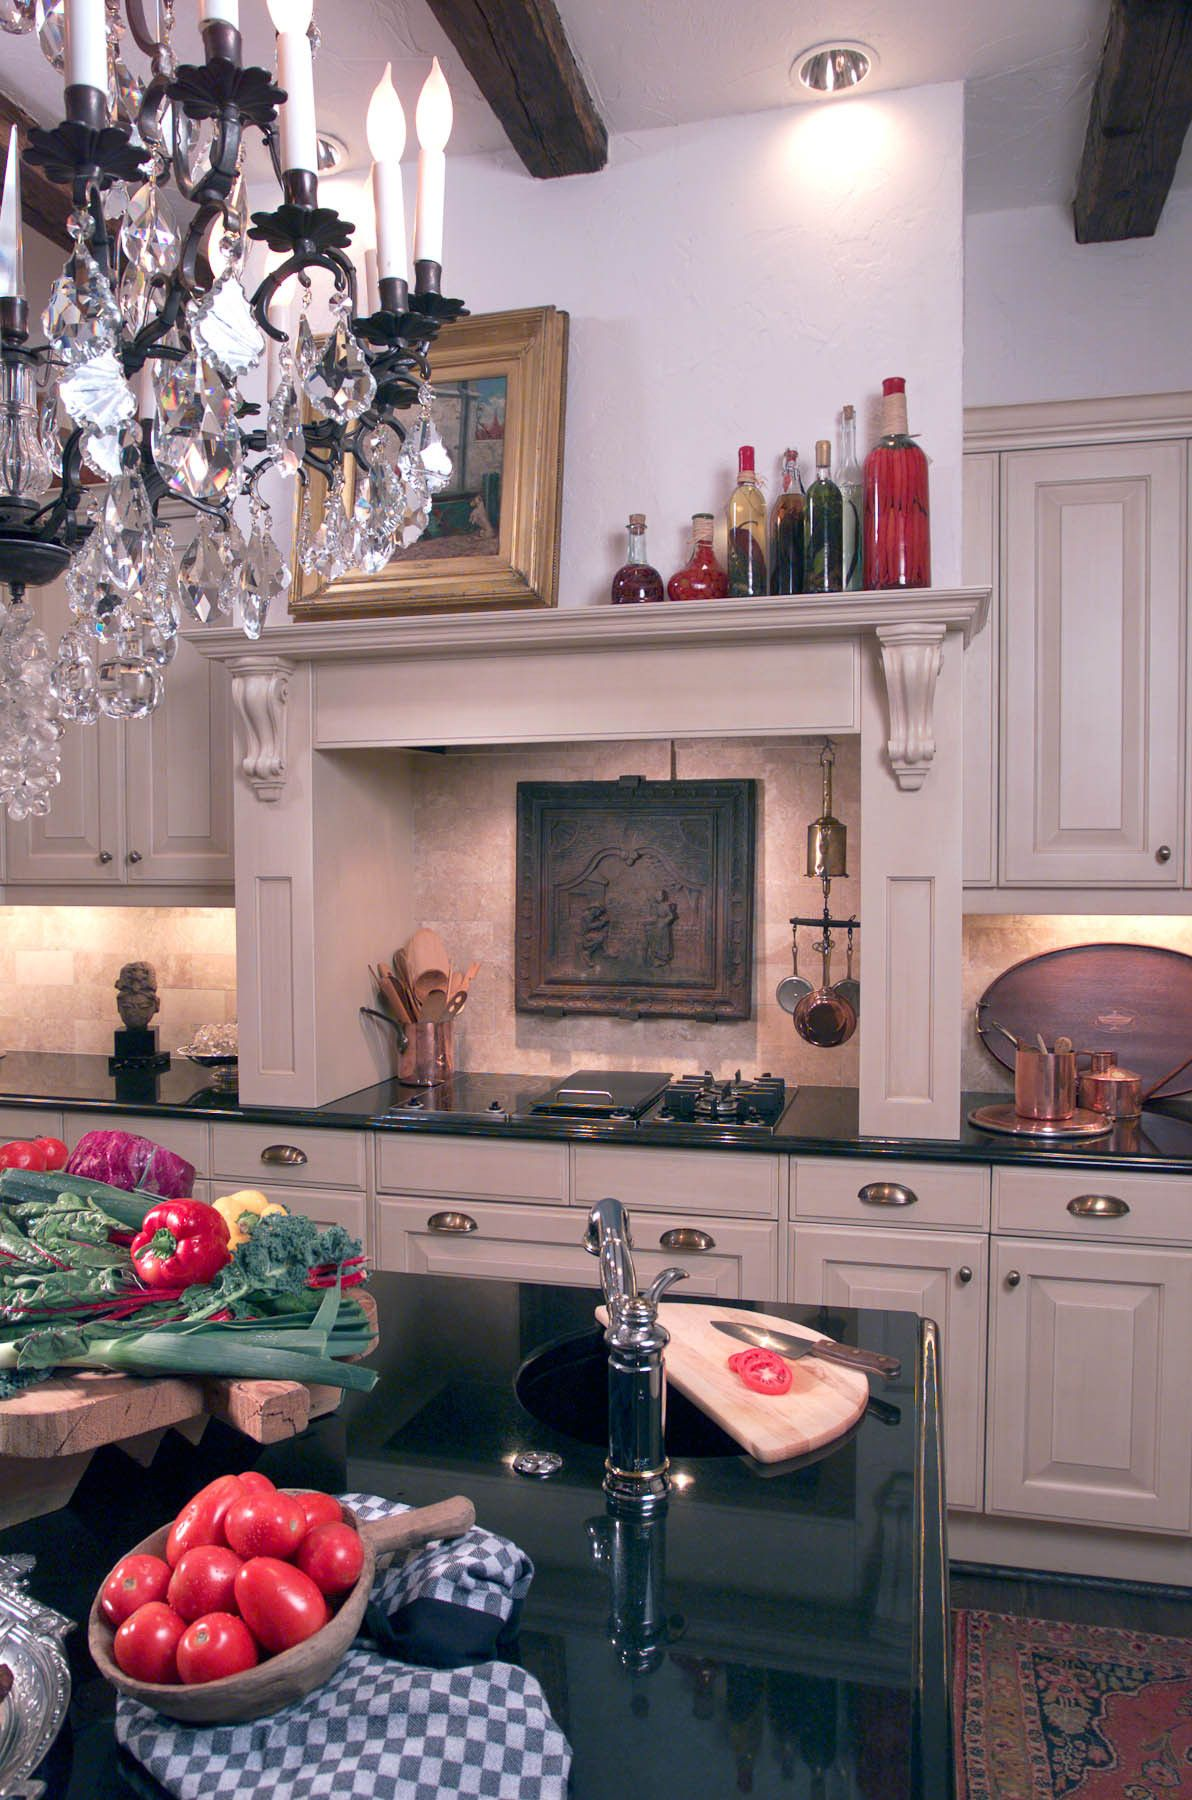 1matthews_kitchen_mantle.jpg